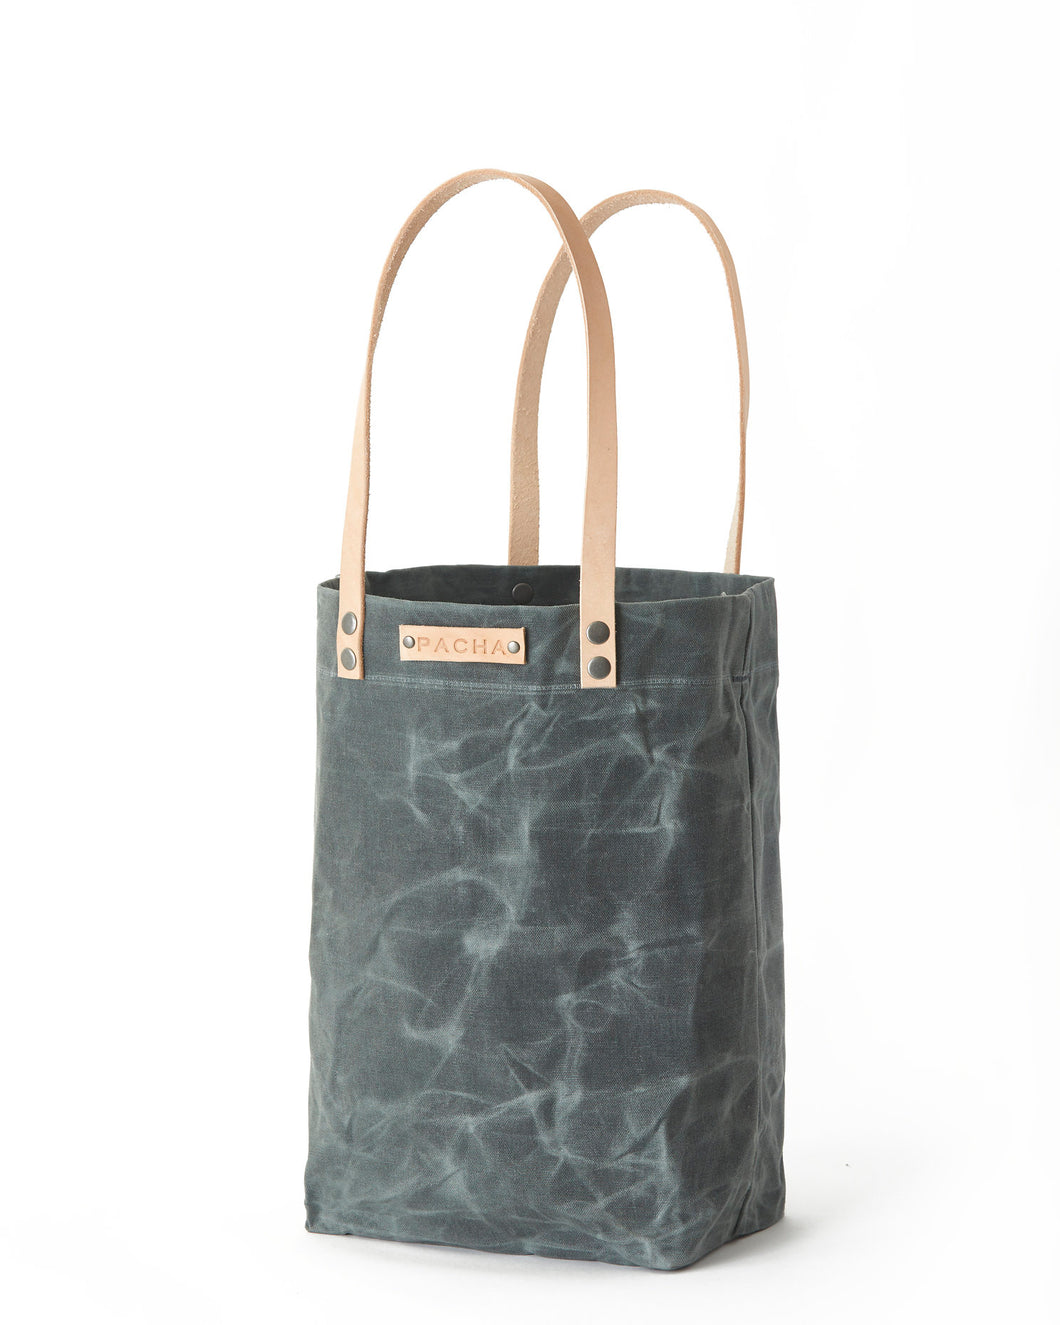 Atlas Tote - Moonlight Grey